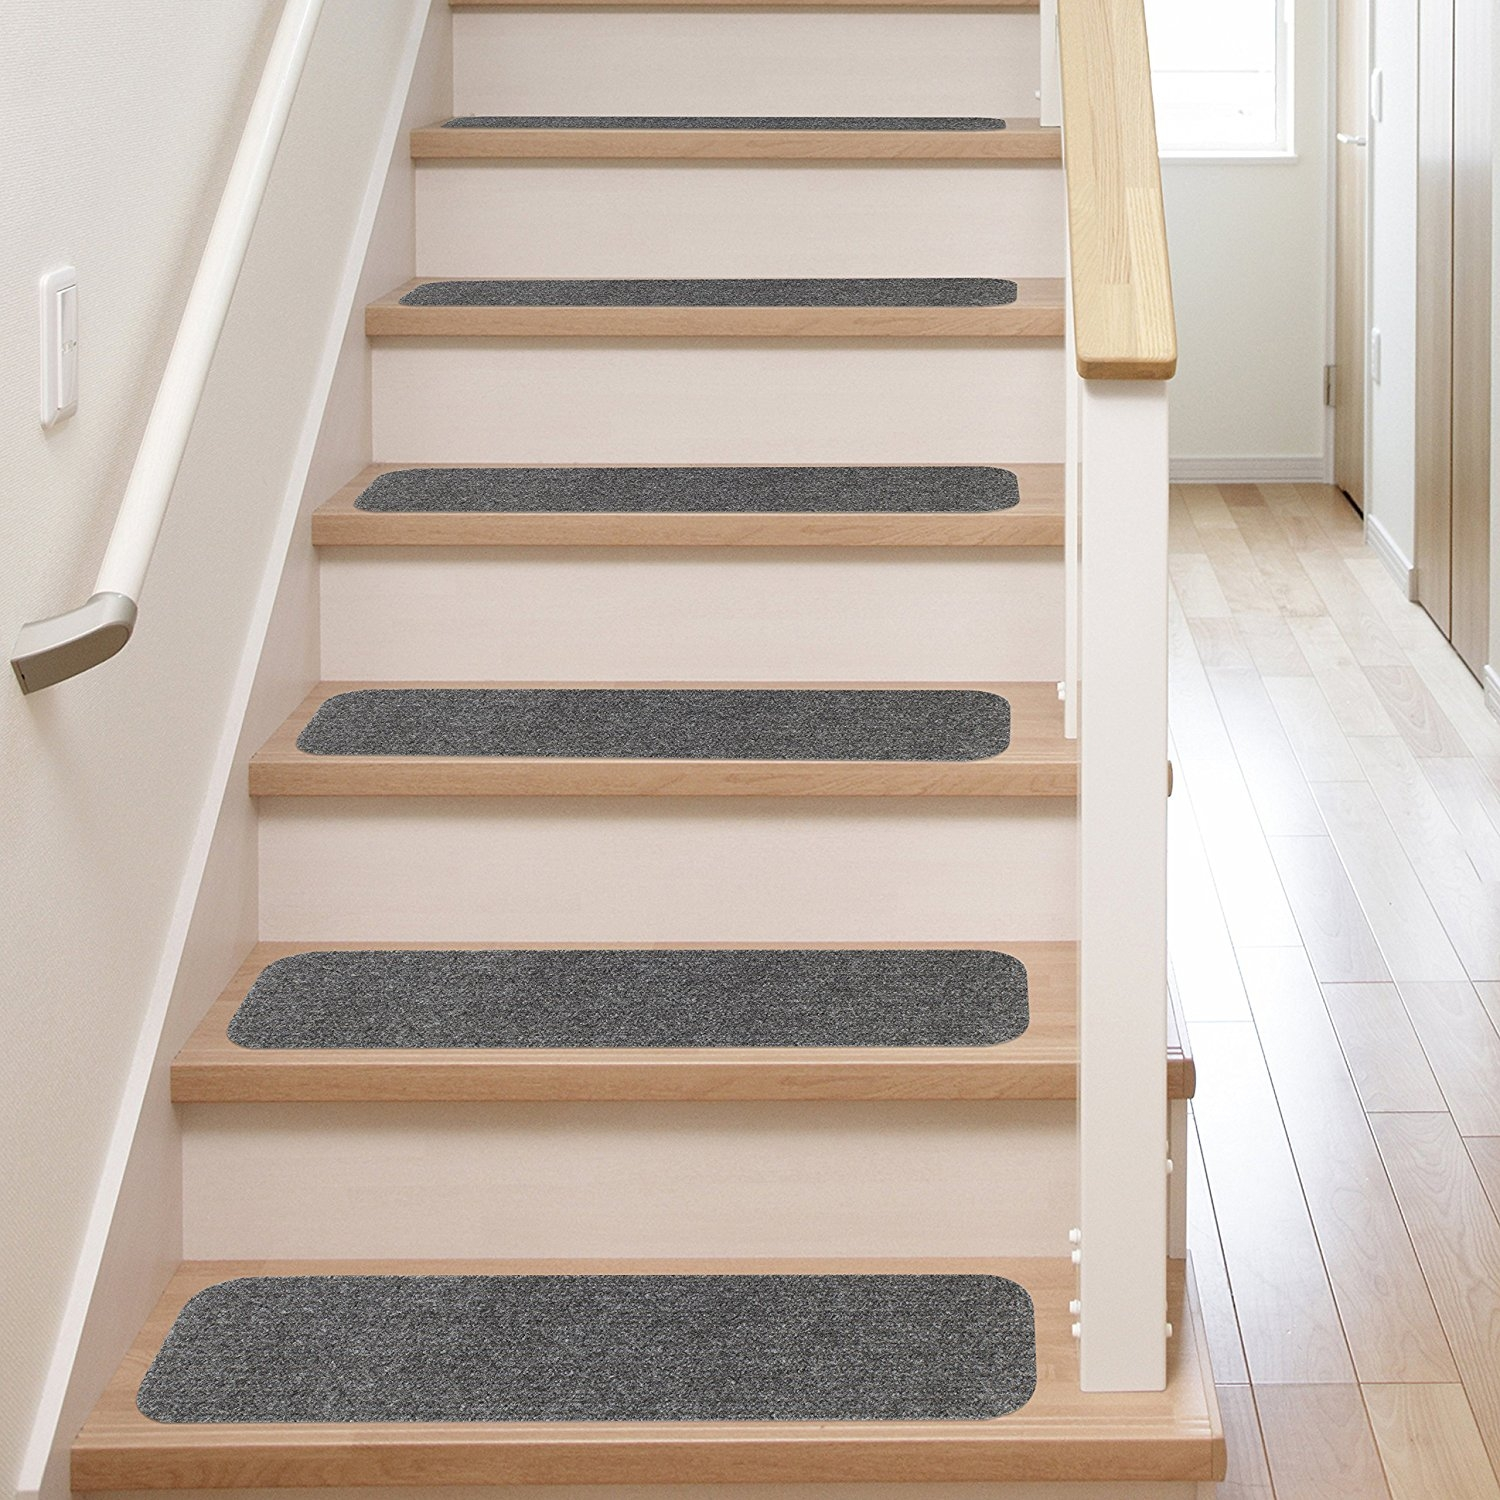 13 Stair Treads Non Slip Carpet Pads Easy Tape Installation With Regard To Stair Treads On Carpet (#1 of 20)